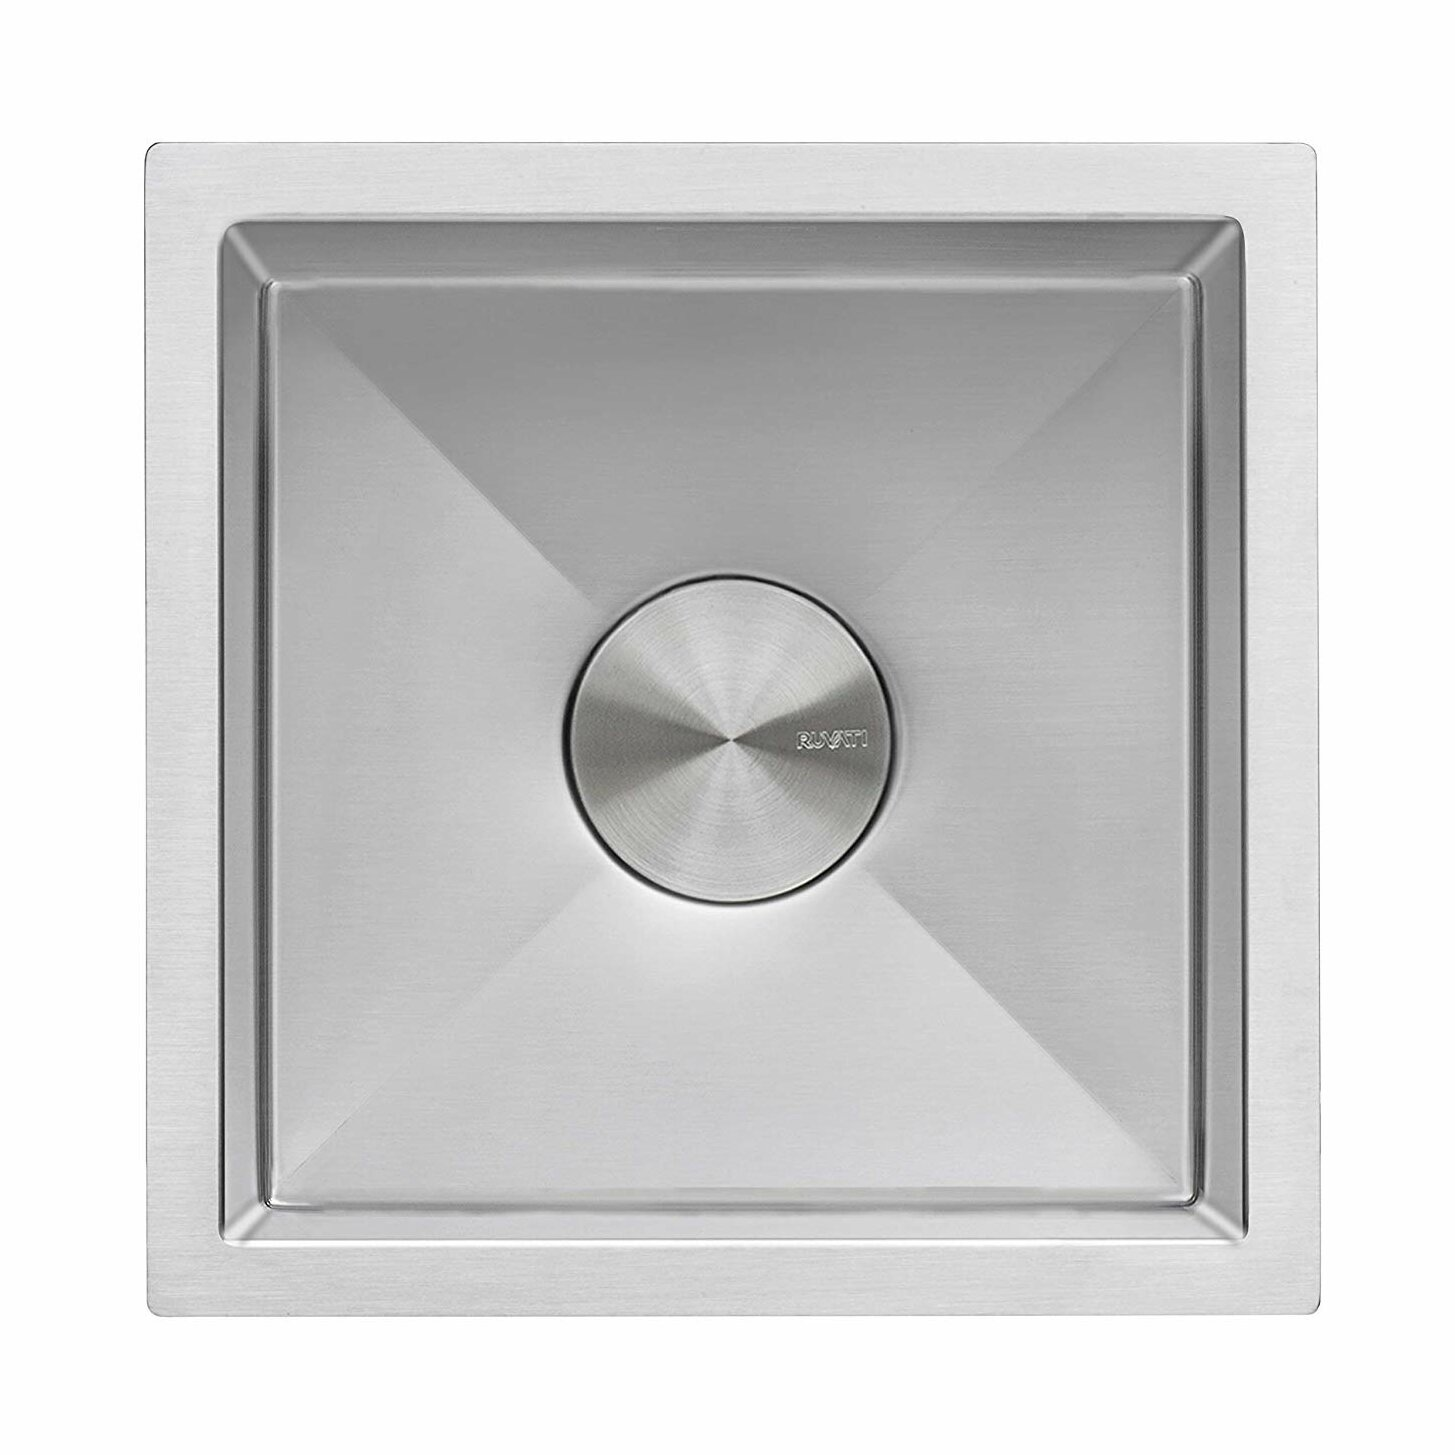 Ruvati 13 L X 15 W Undermount Kitchen Sink